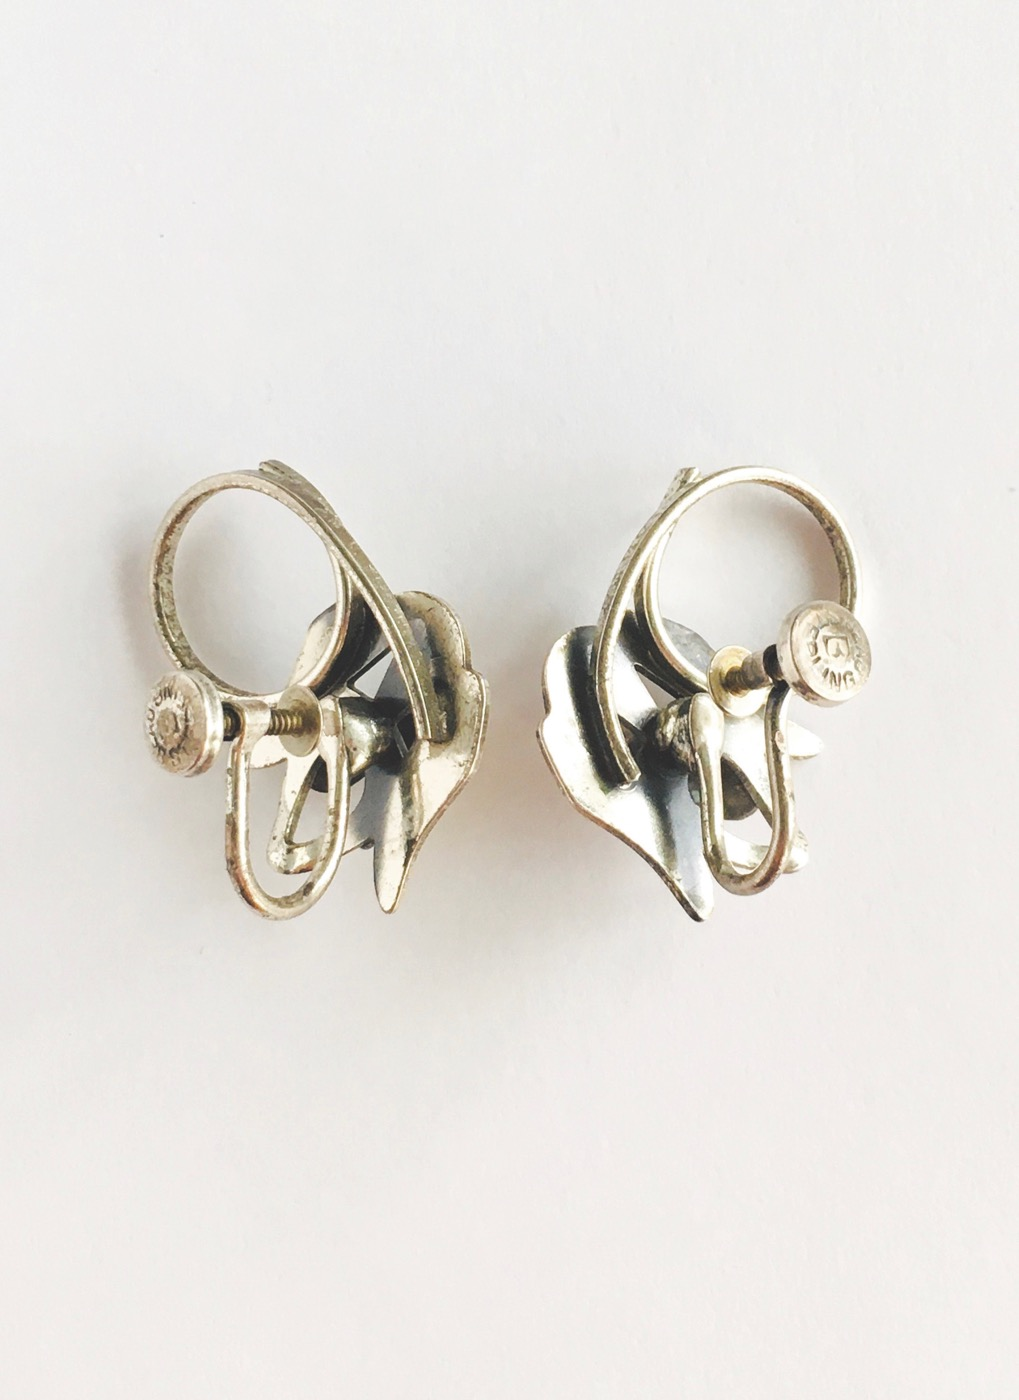 vintage sterling silver Beau dog earrings